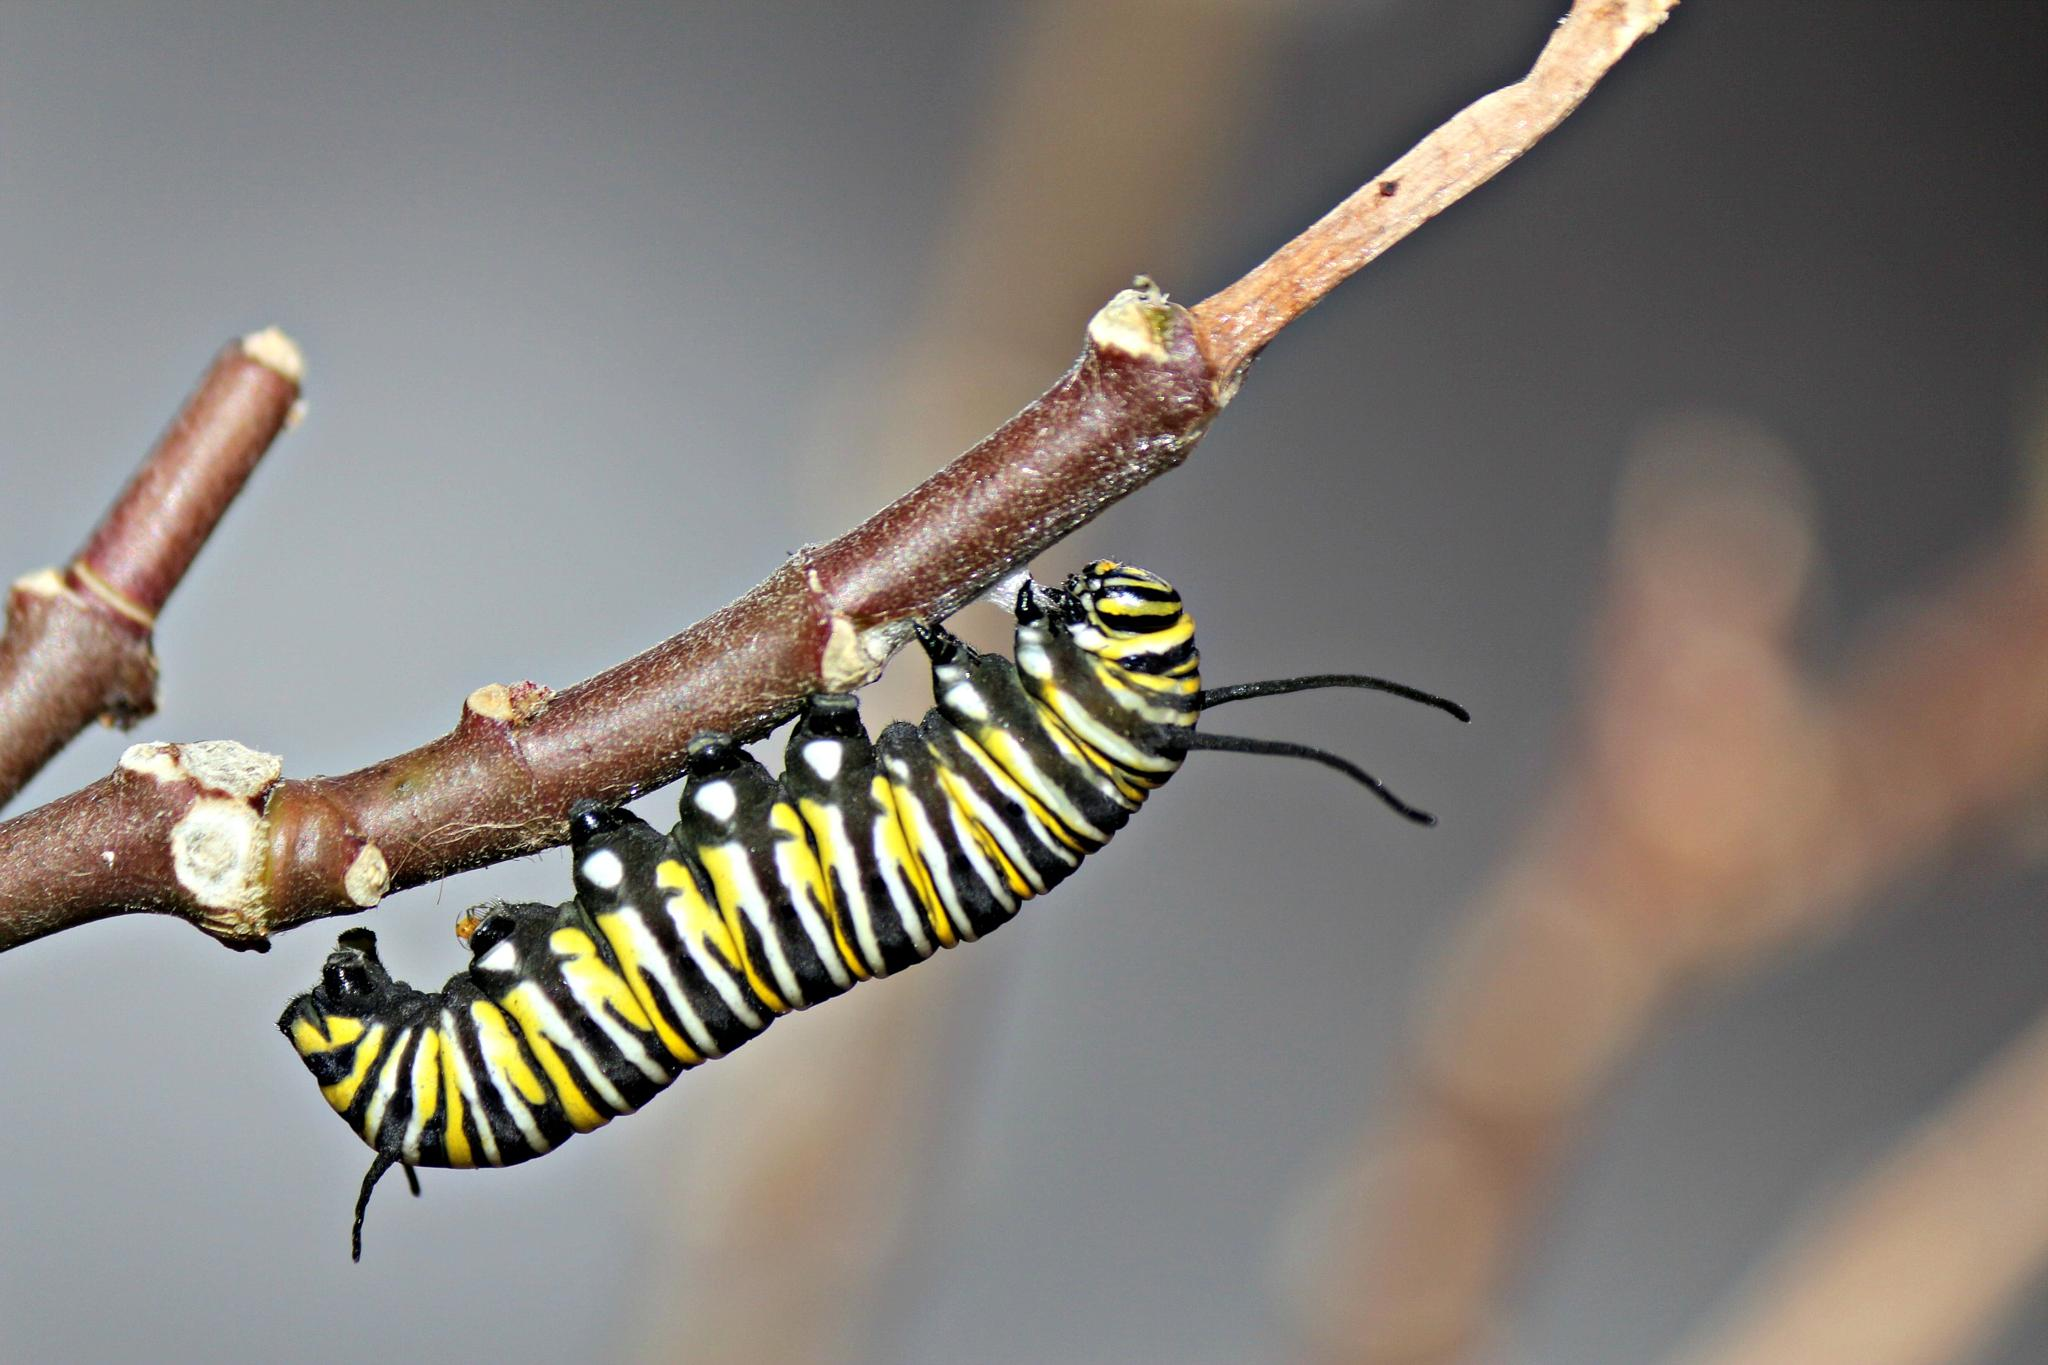 Caterpillar of a Monarch Butterfly by Miranda Askwith